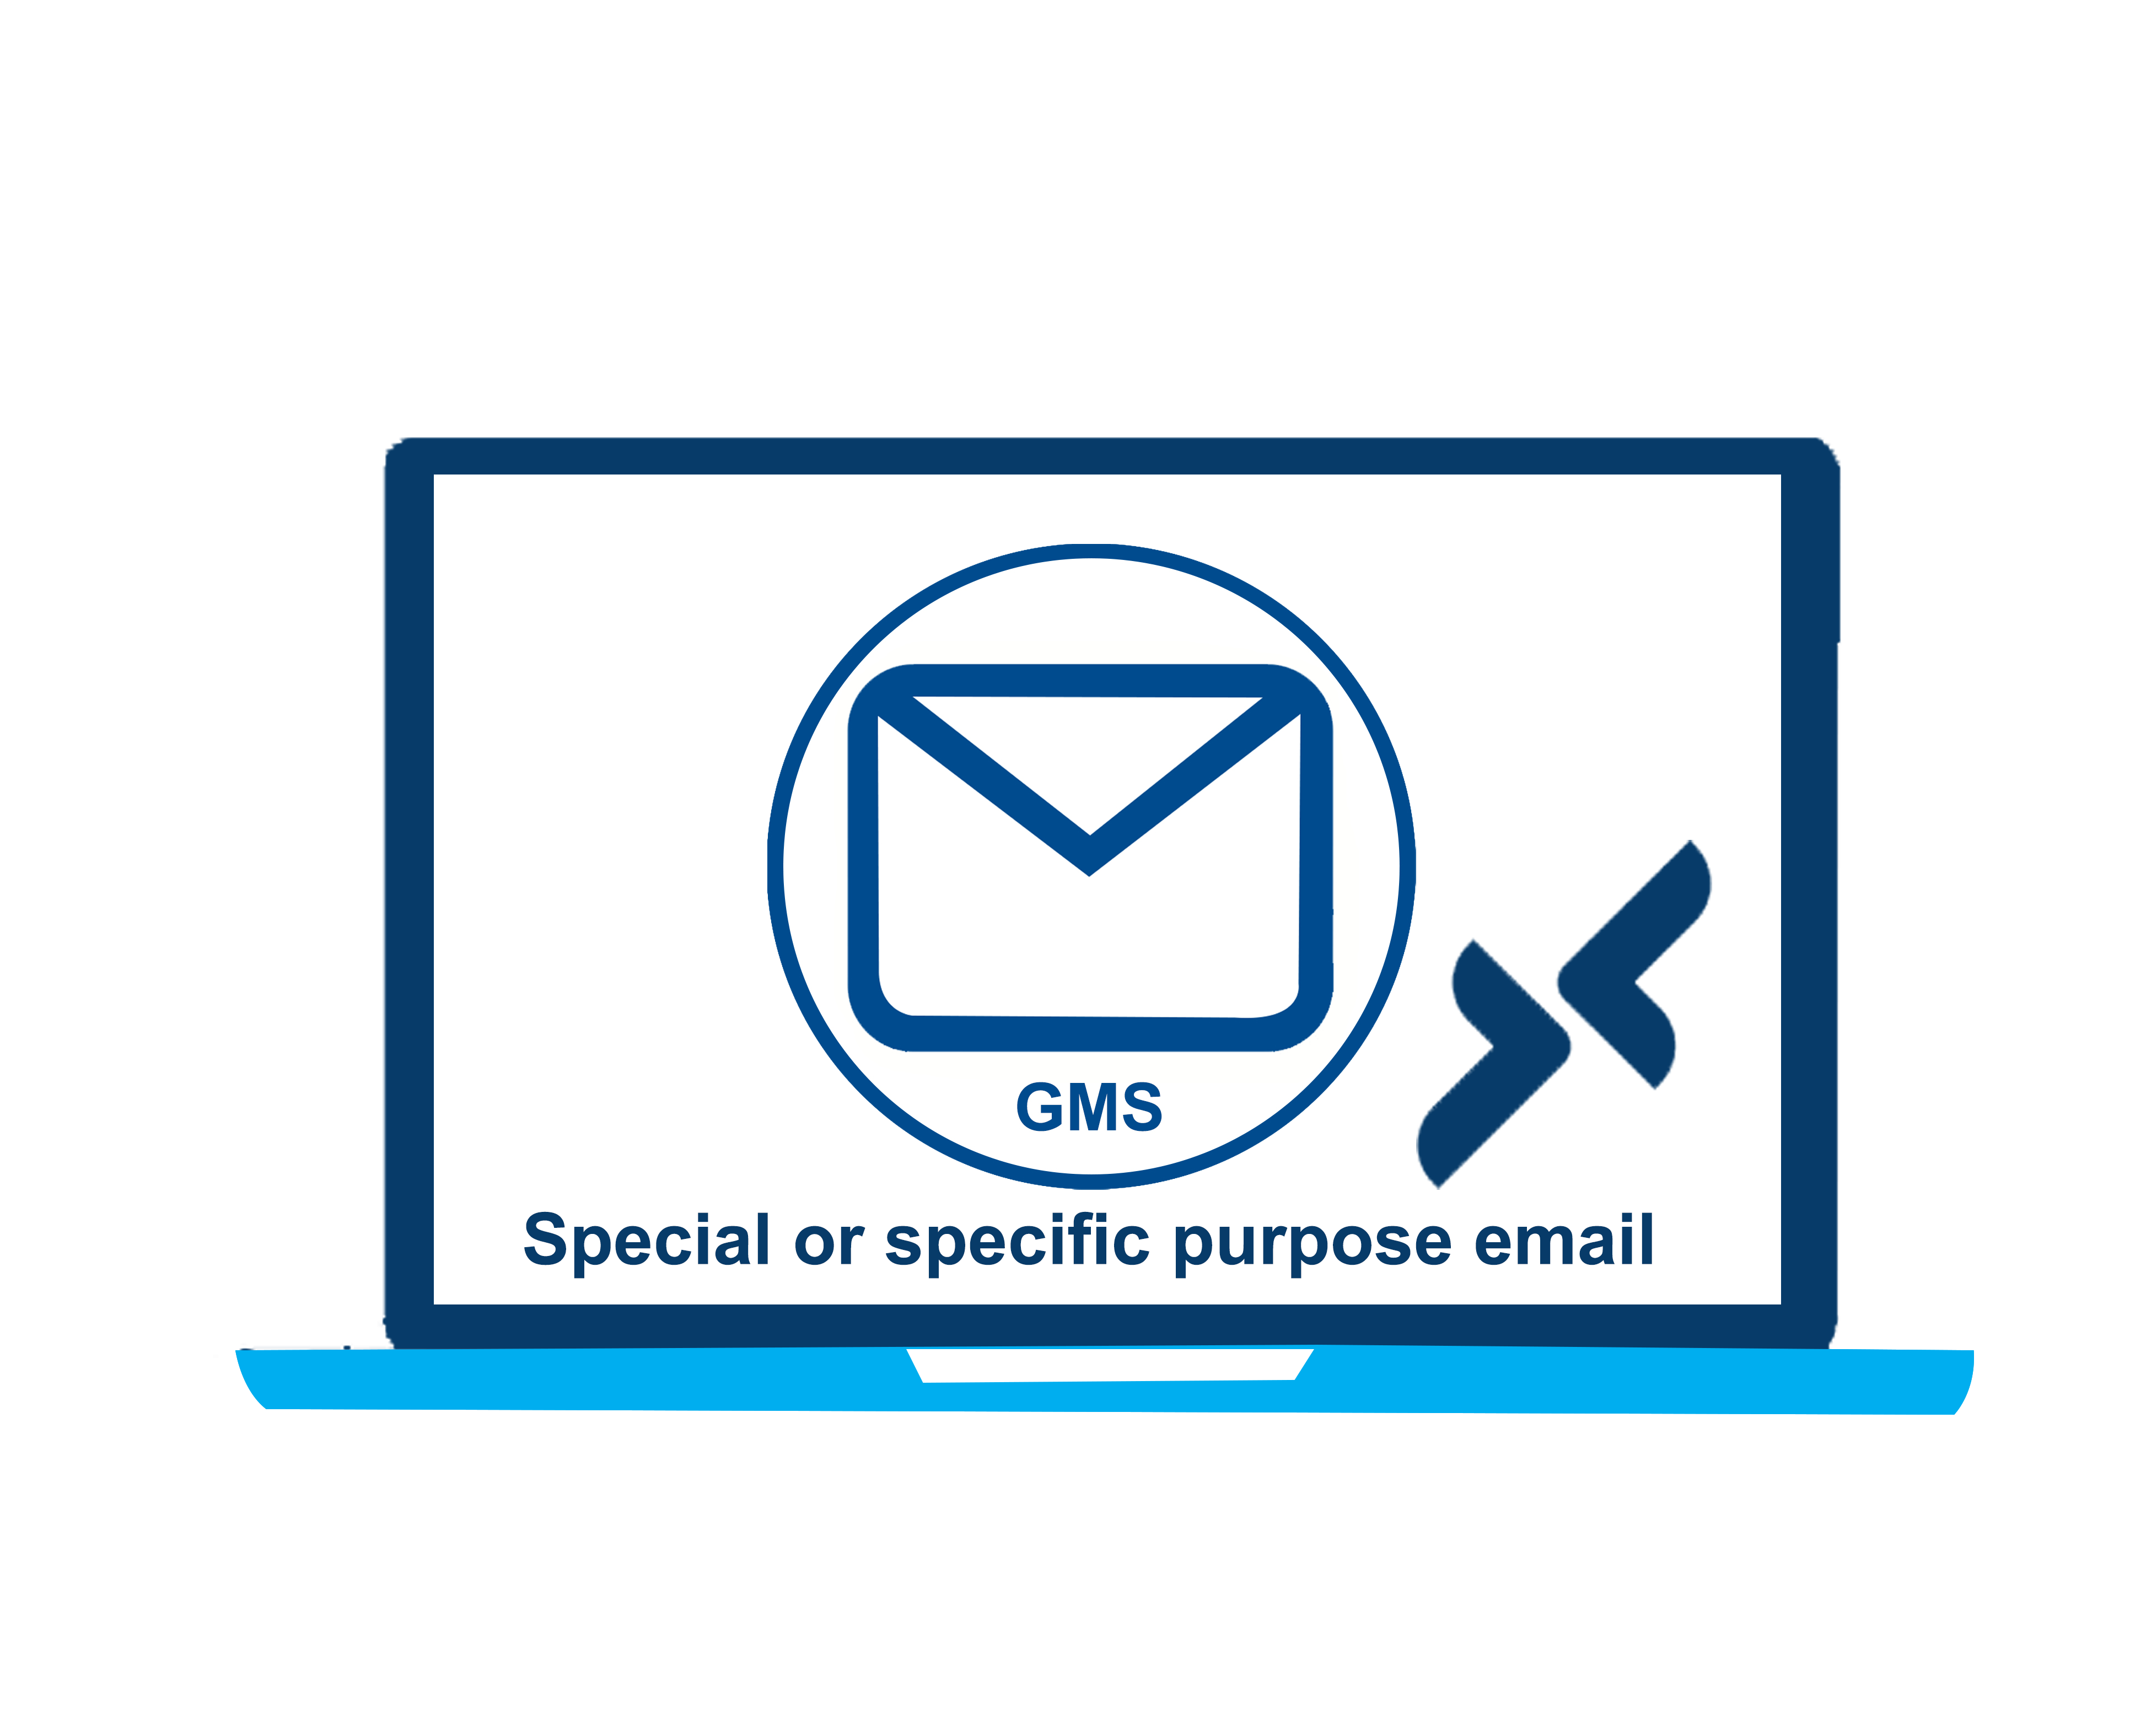 Special or specific purpose email accounts